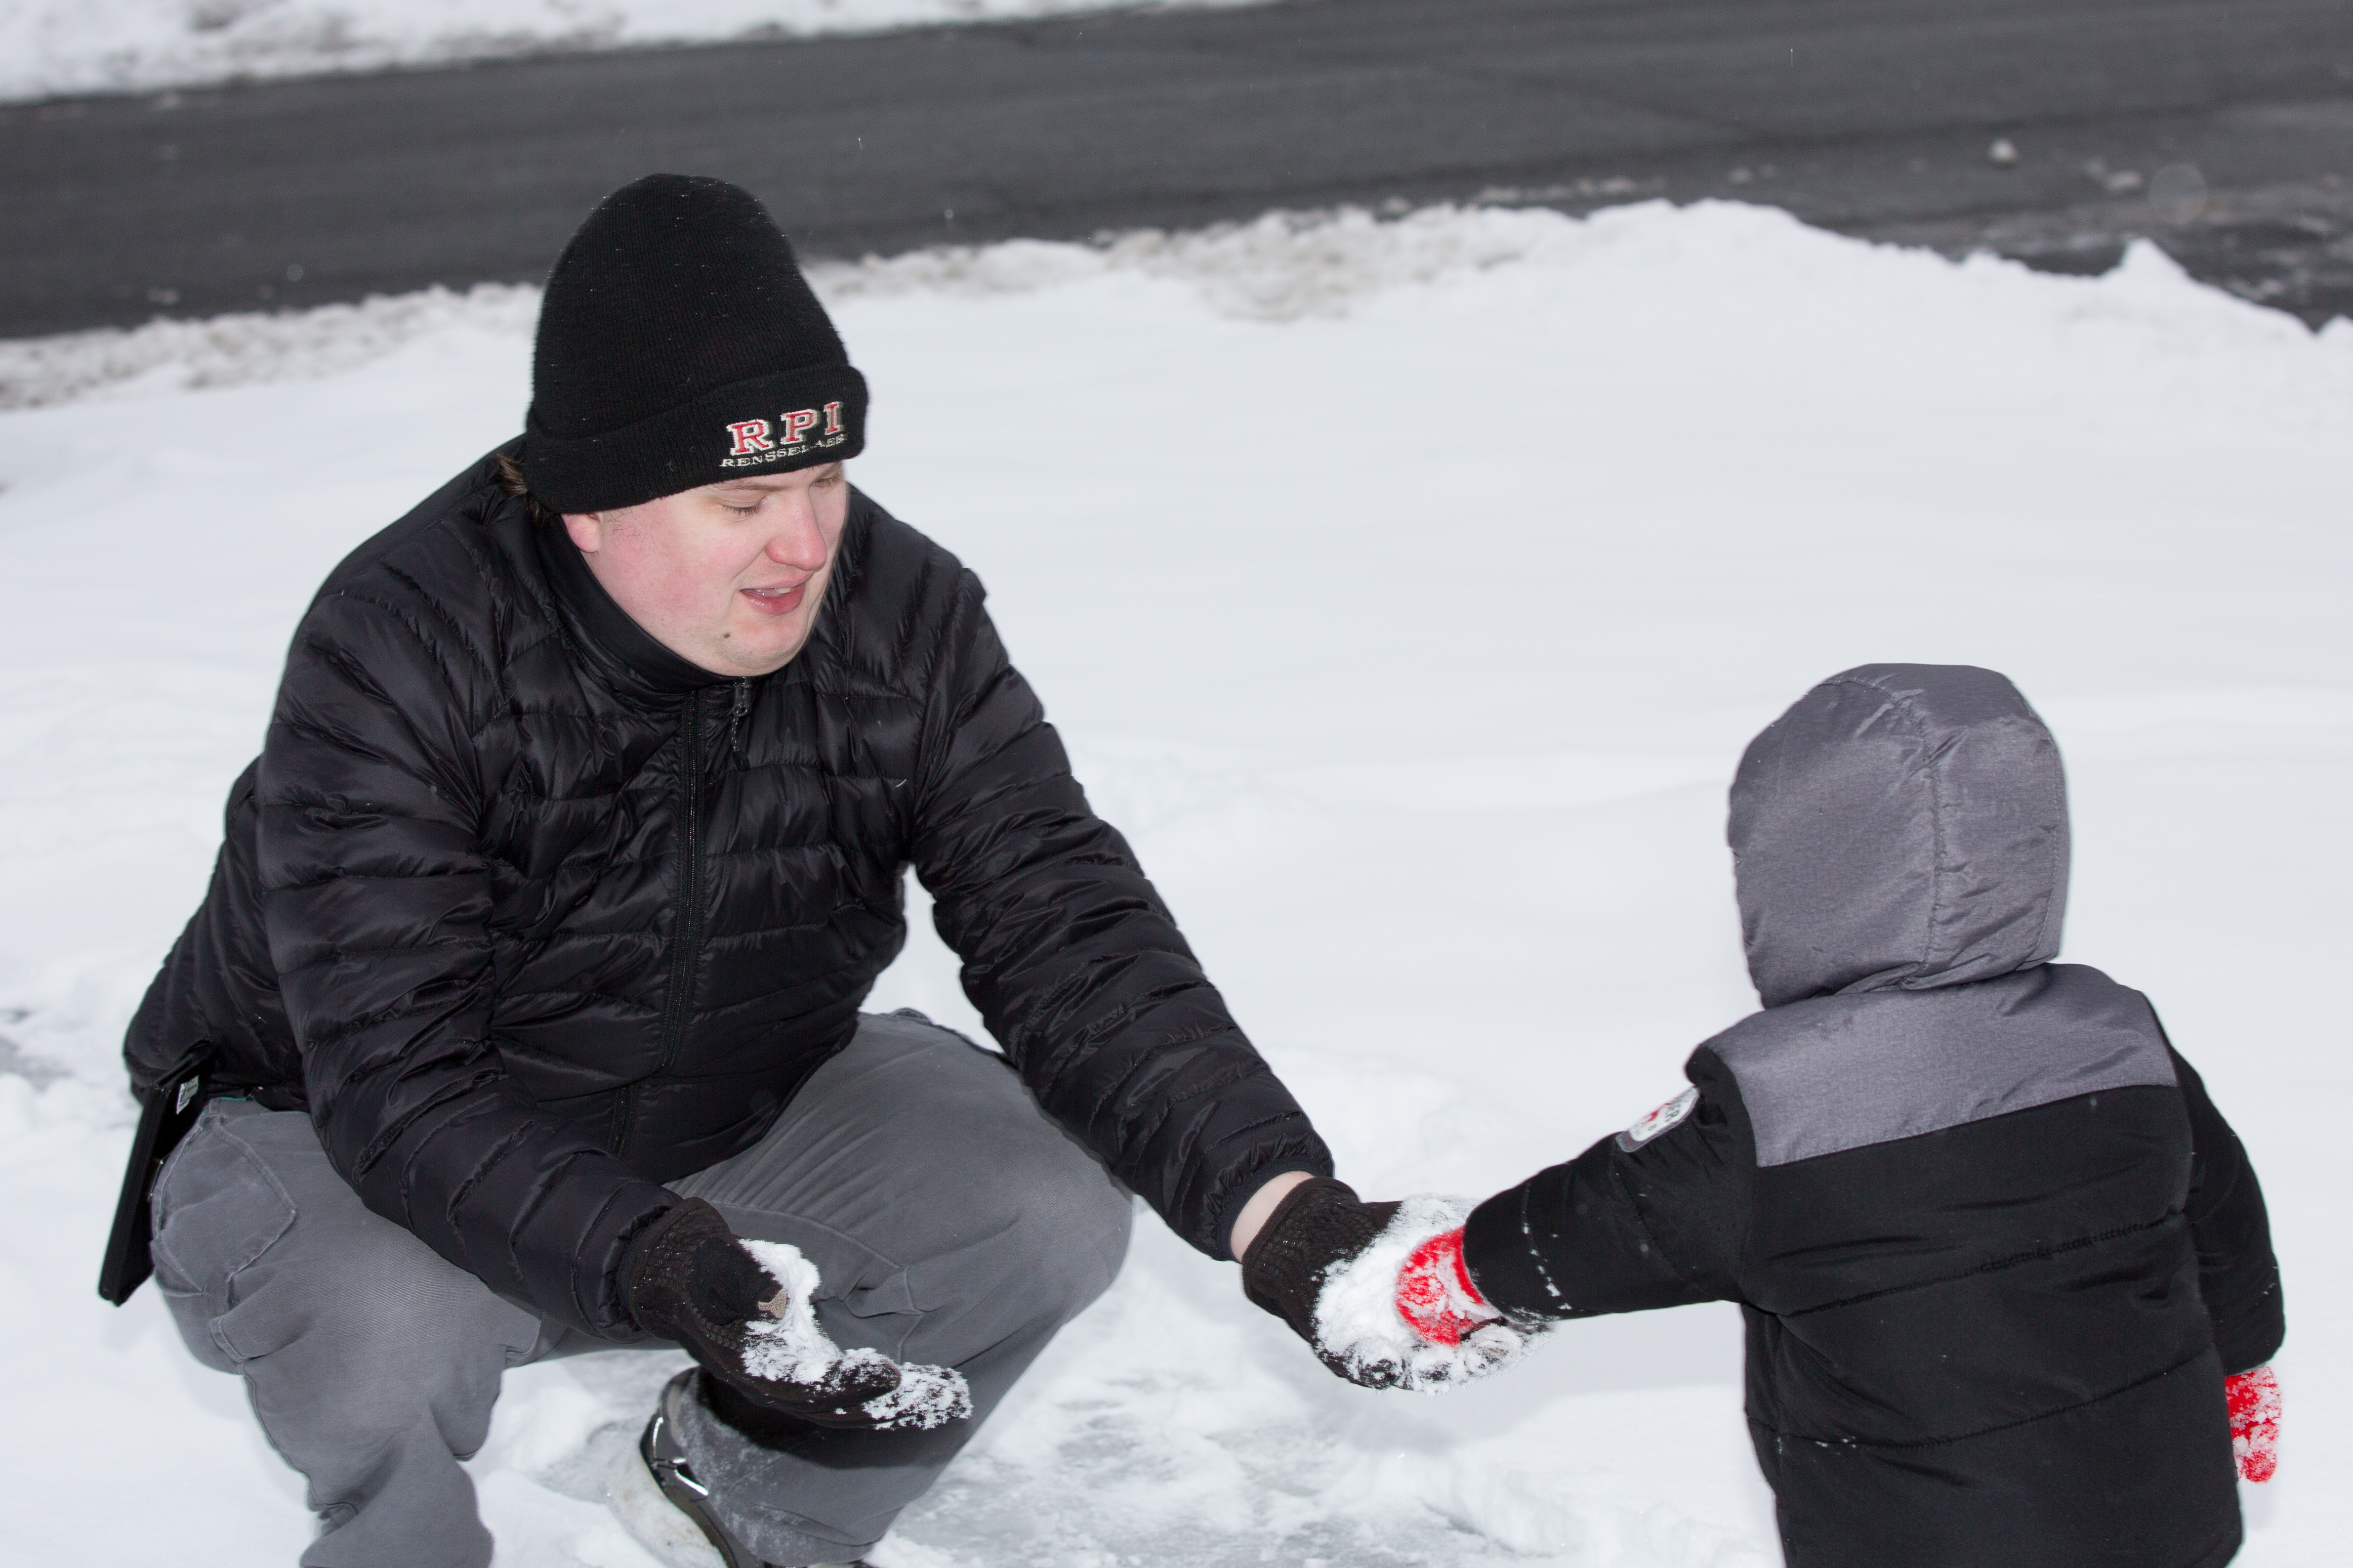 Daddy shows me a snowball...